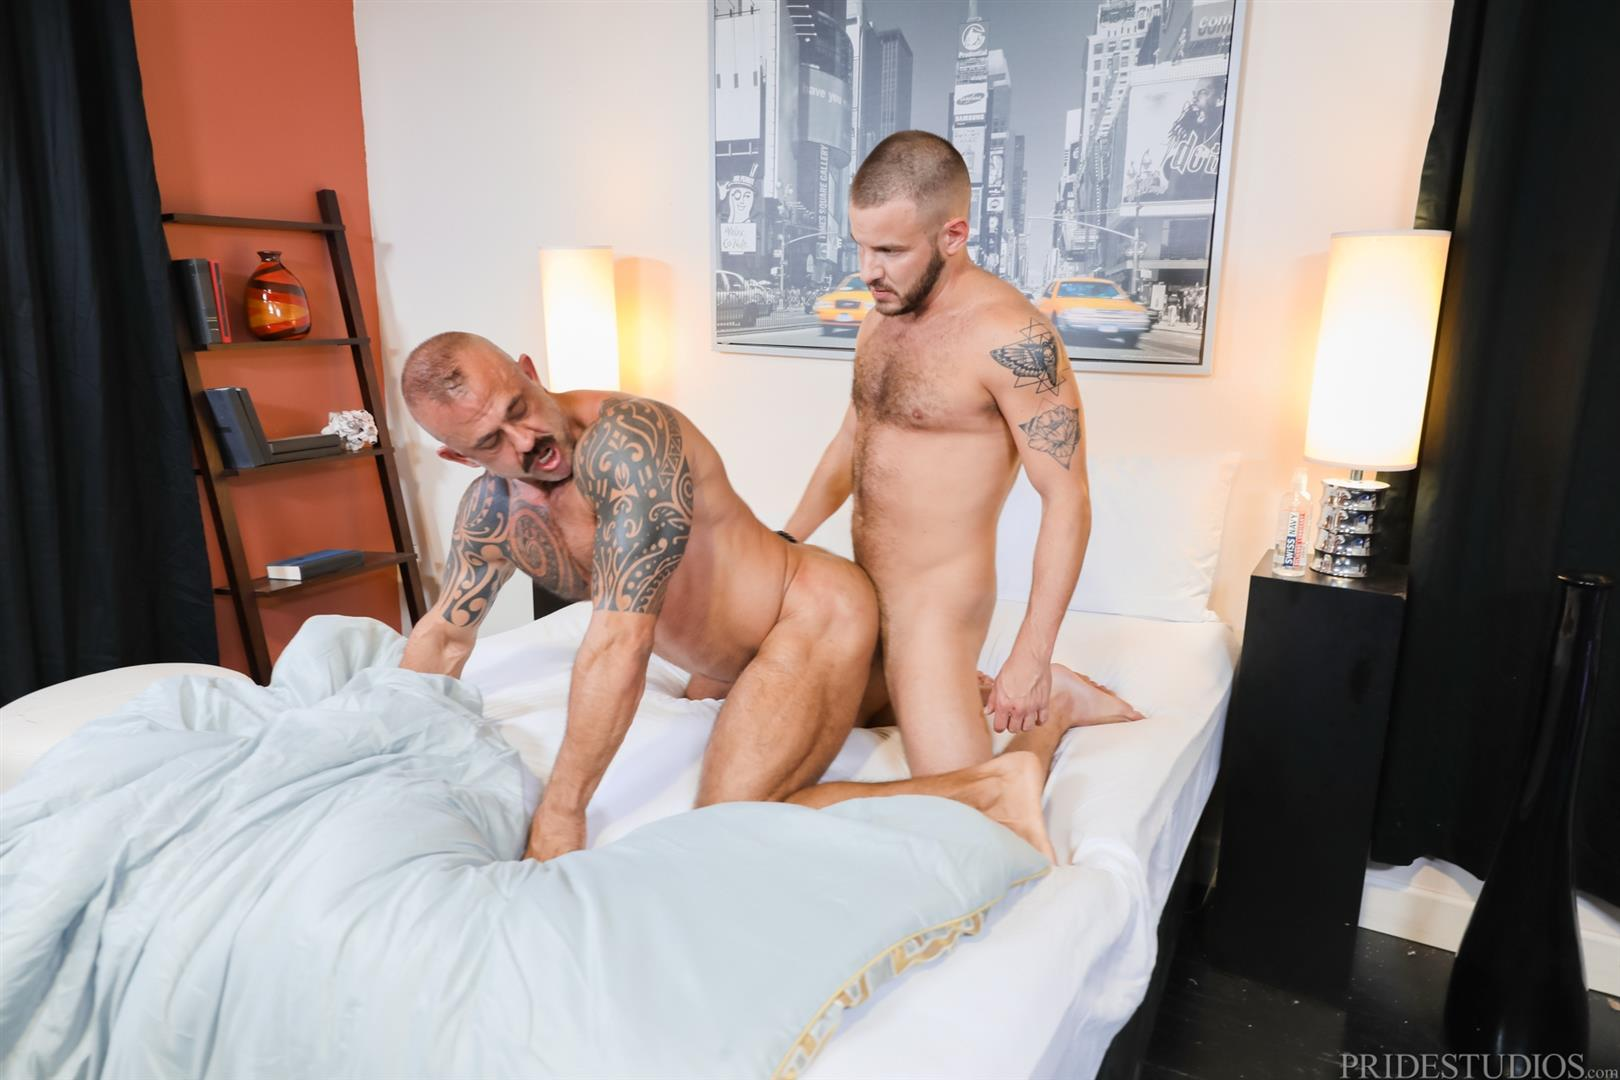 Men-Over-30-Jon-Galt-and-Sean-Harding-Muscle-Daddy-Barebacking-Muscle-Cub-13 Muscle Daddy Jon Galt And Muscle Cub Sean Harding Bareback Flipping